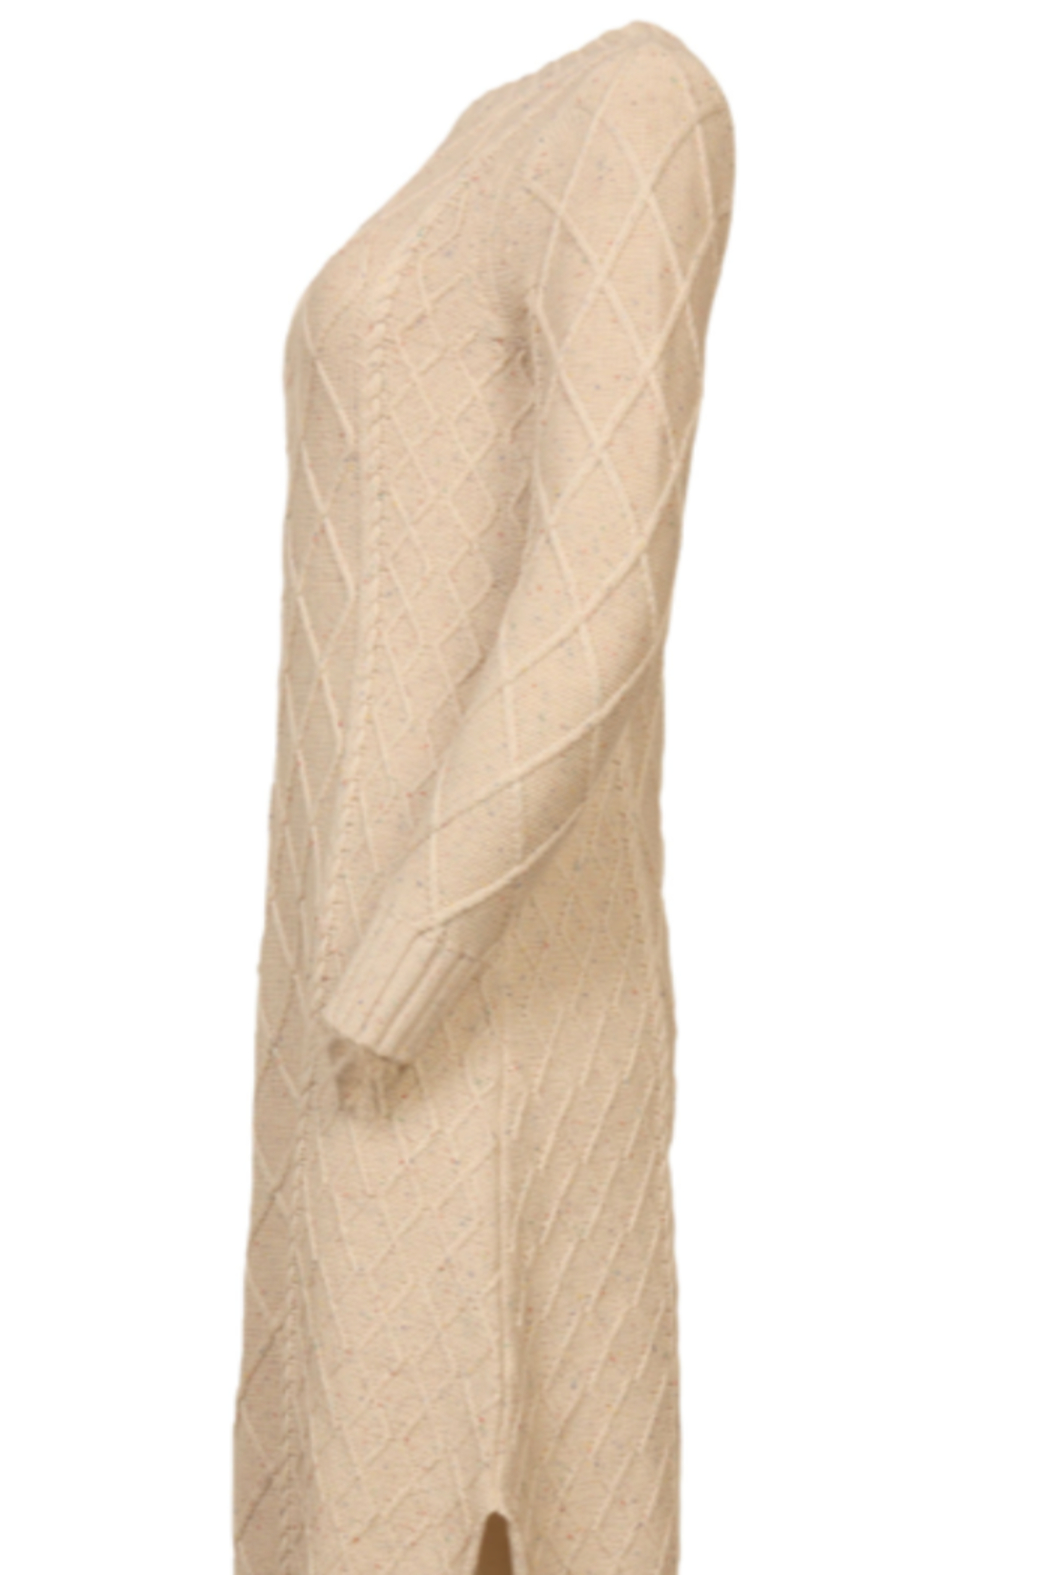 Line & Dot Molly Cable Knit Dress - Front Full Image